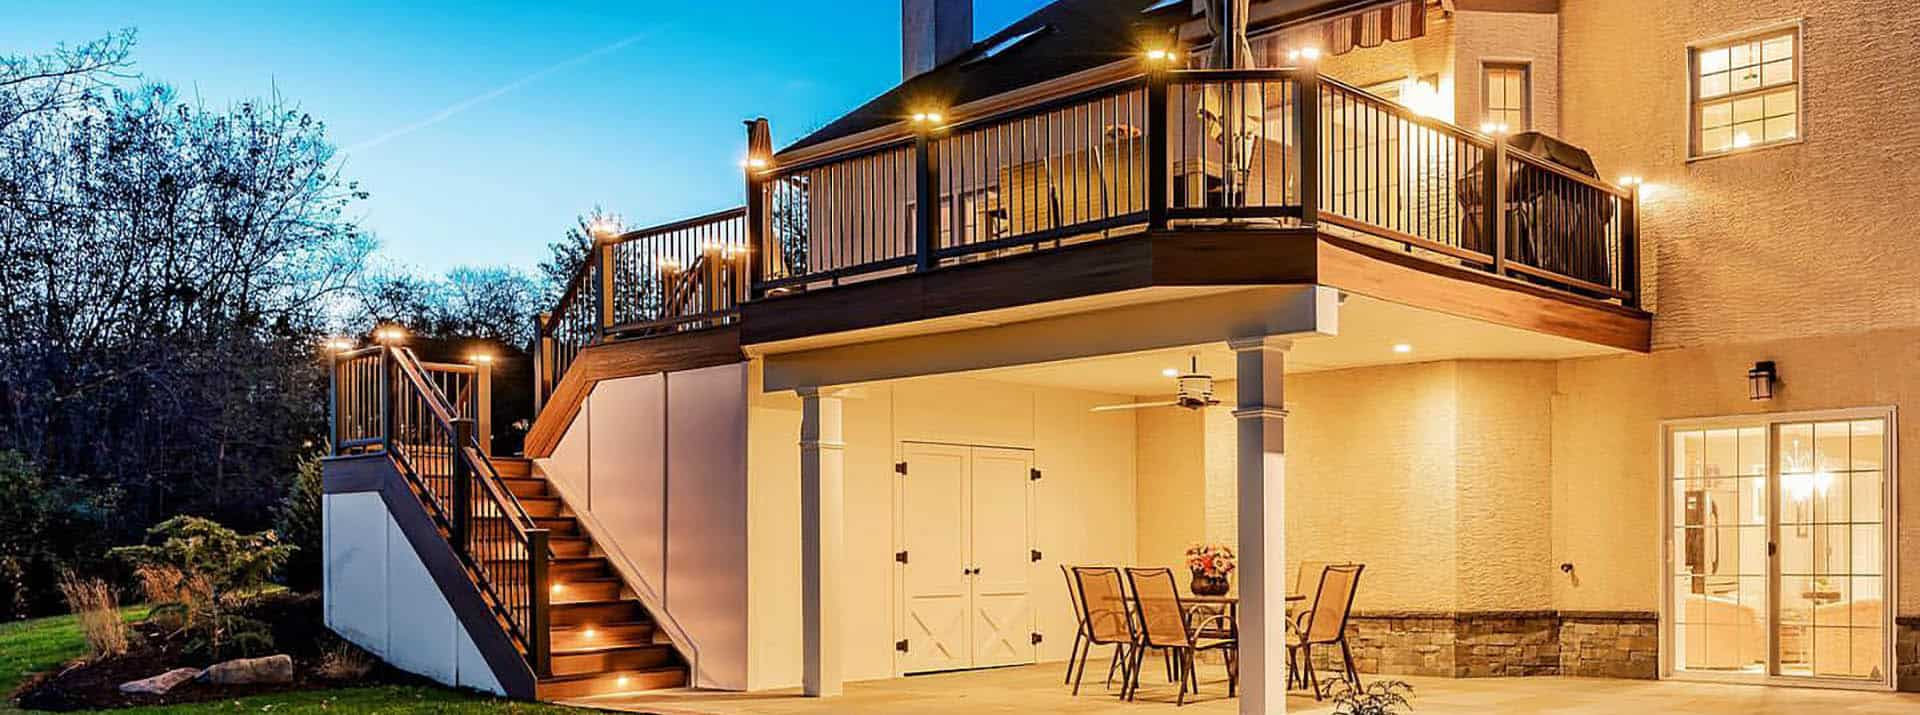 truscapes-deck-fence-lighting-products-lights-supply-products-best-deck-2021